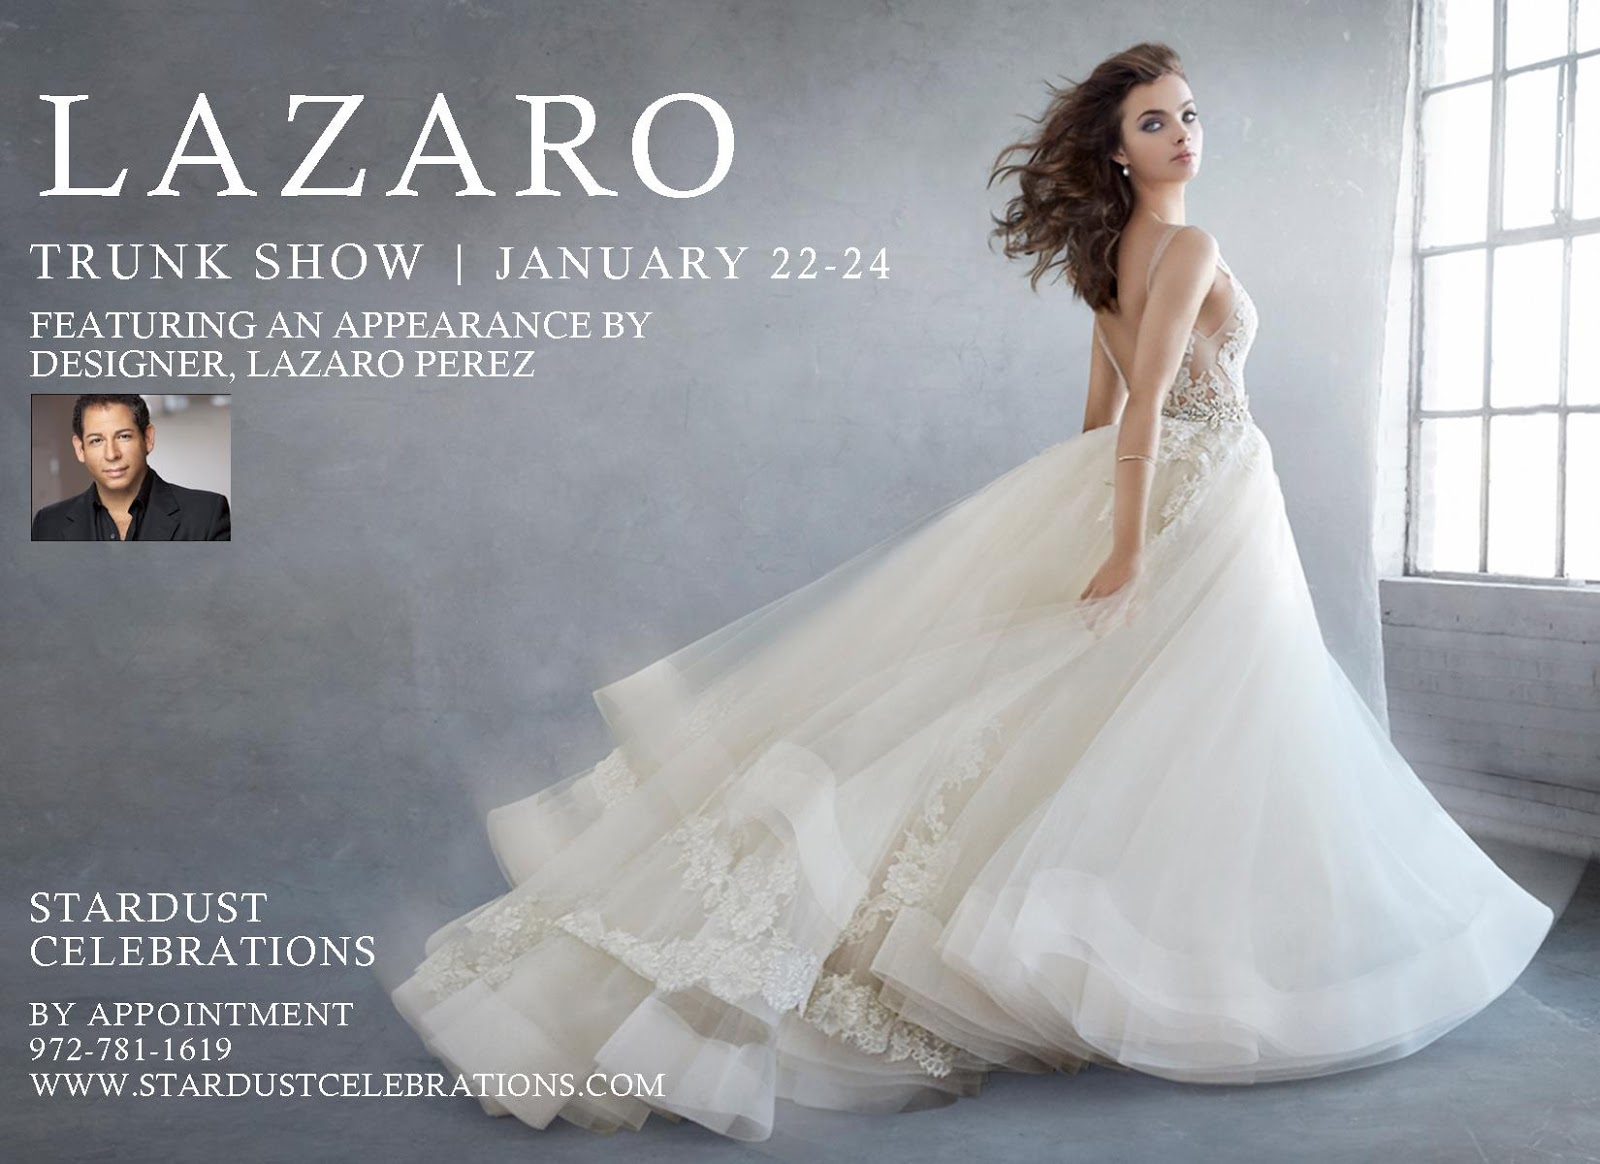 Meet Lazaro Perez at our 2016 Lazaro Trunk Show this weekend ...